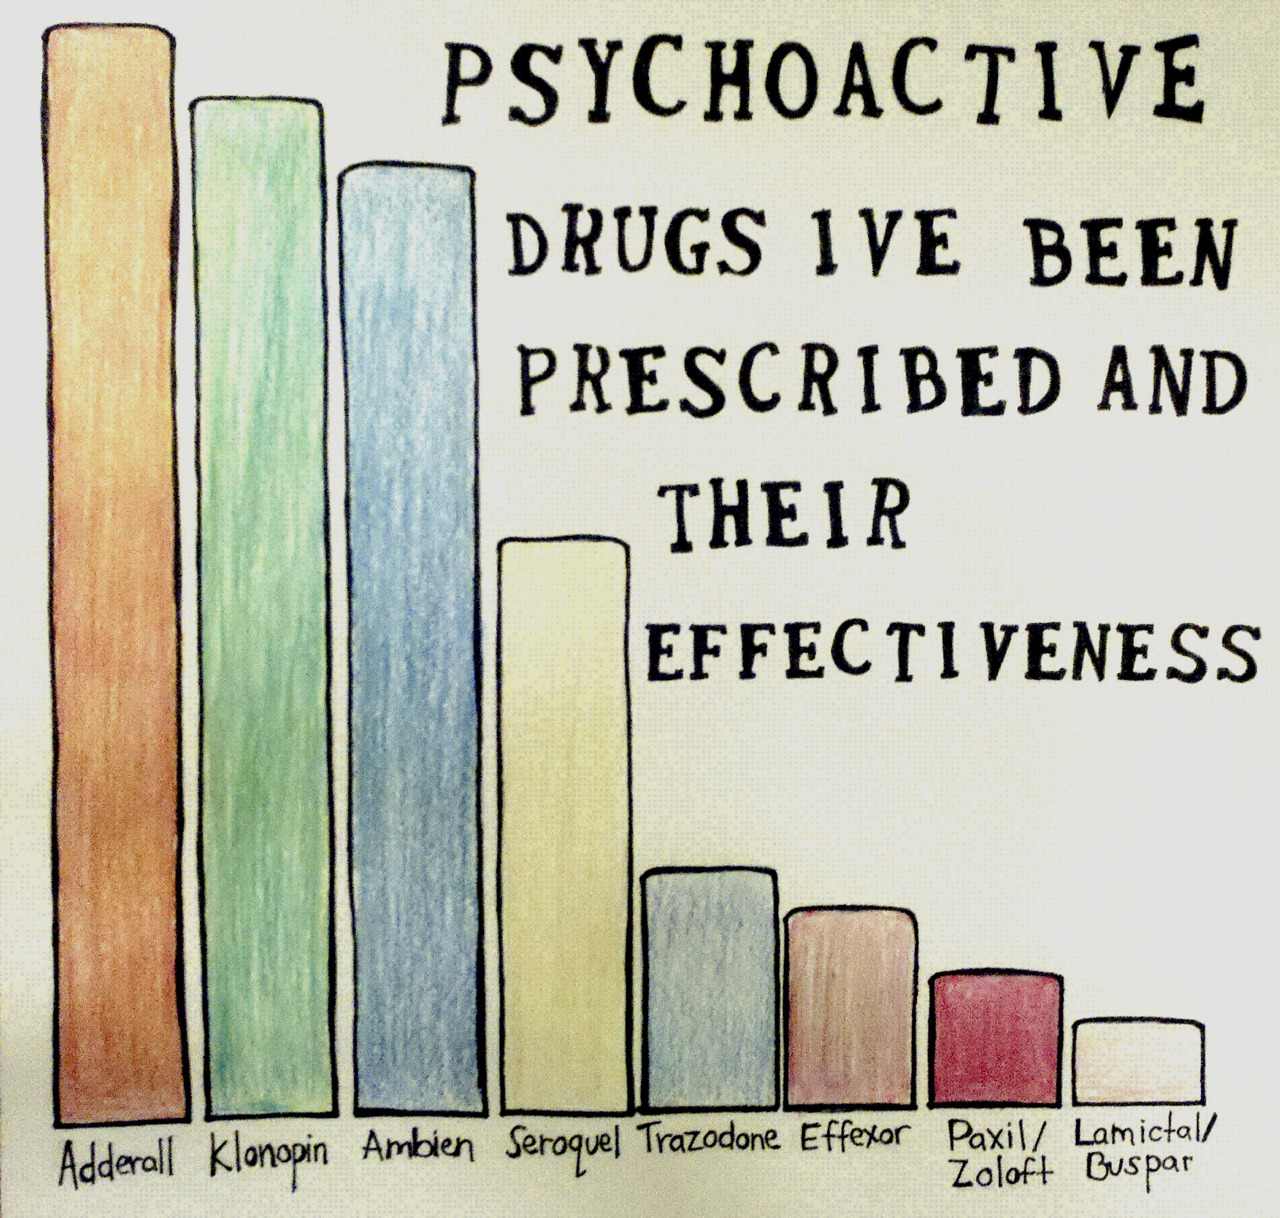 This shows how effective my medication has been over the years, which does not look very good for me. -Kaitea